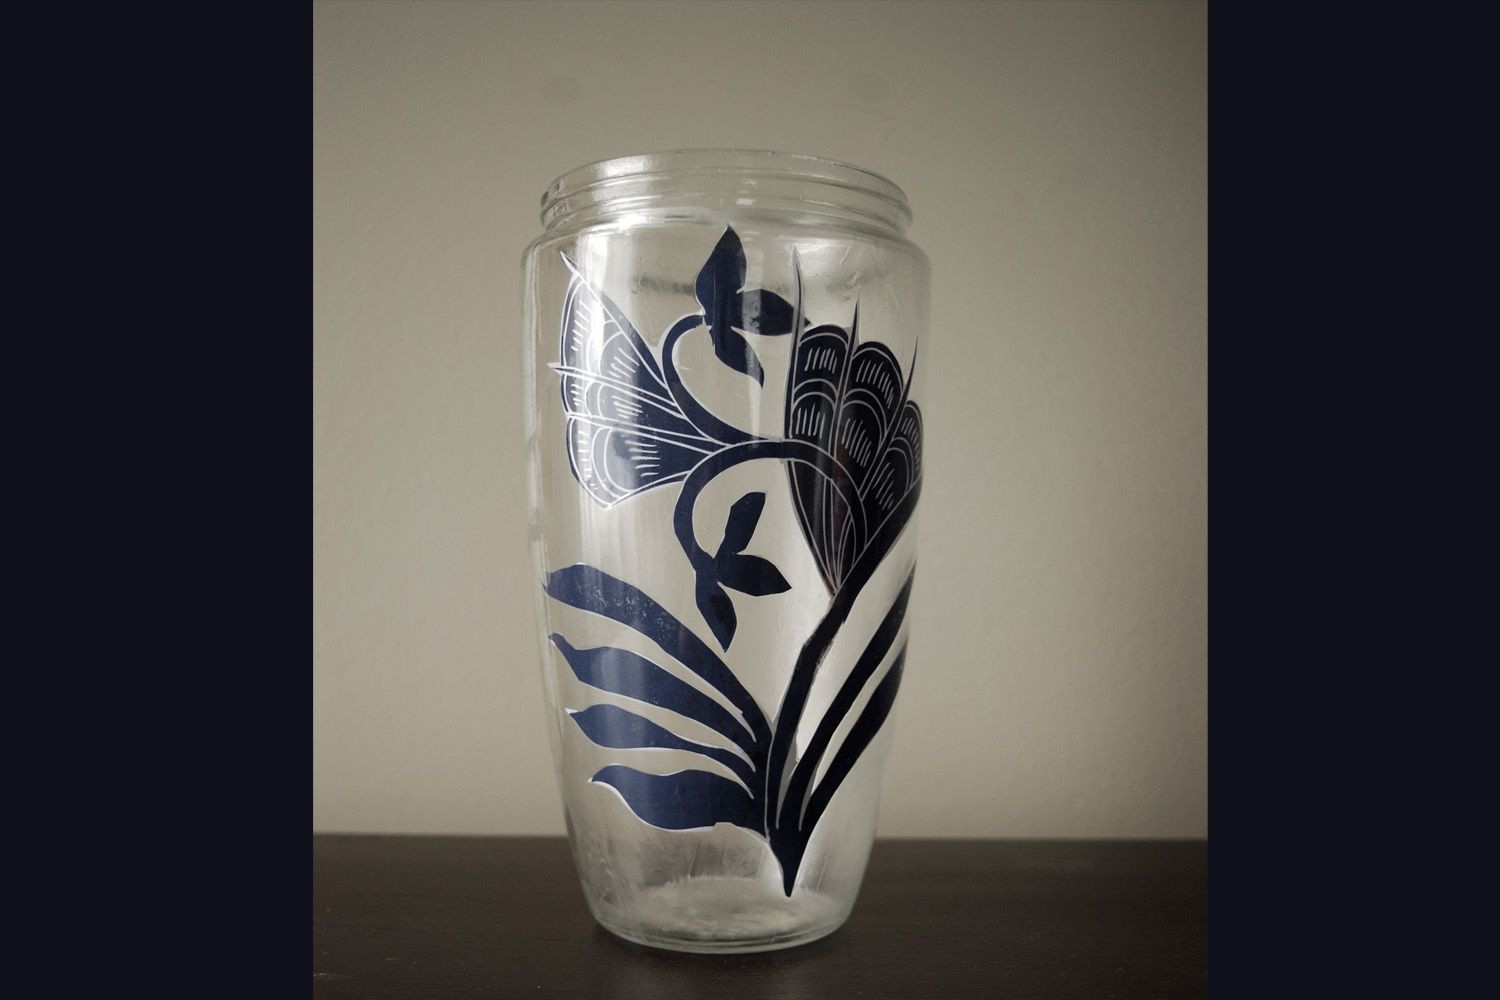 blue white ginger jar vases of asian influence decoupaged ginger jar in 1459b 57979a4a5f9b58461f26aeac